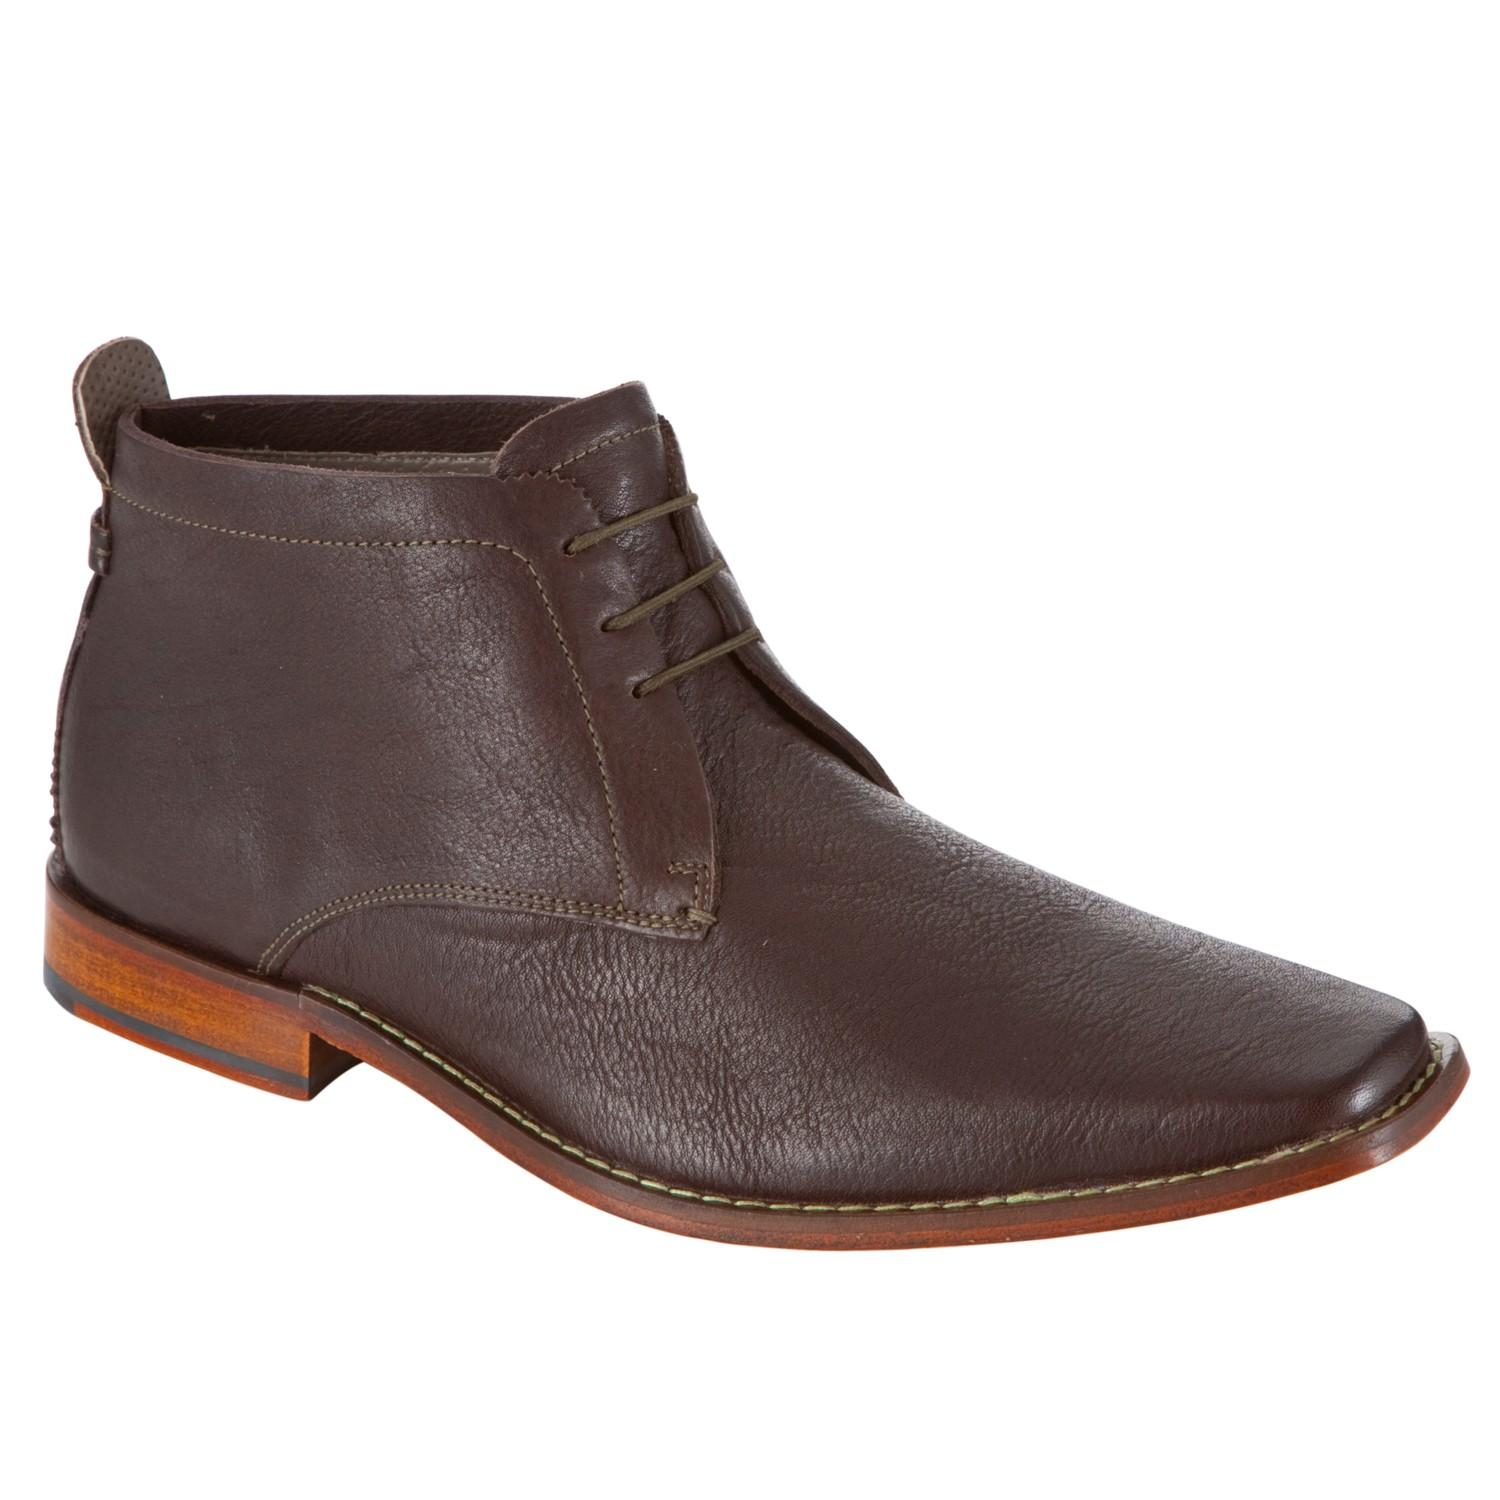 ace482600a40 Ted Baker Ashcroft Leather Chukka Boots Brown in Brown for Men - Lyst